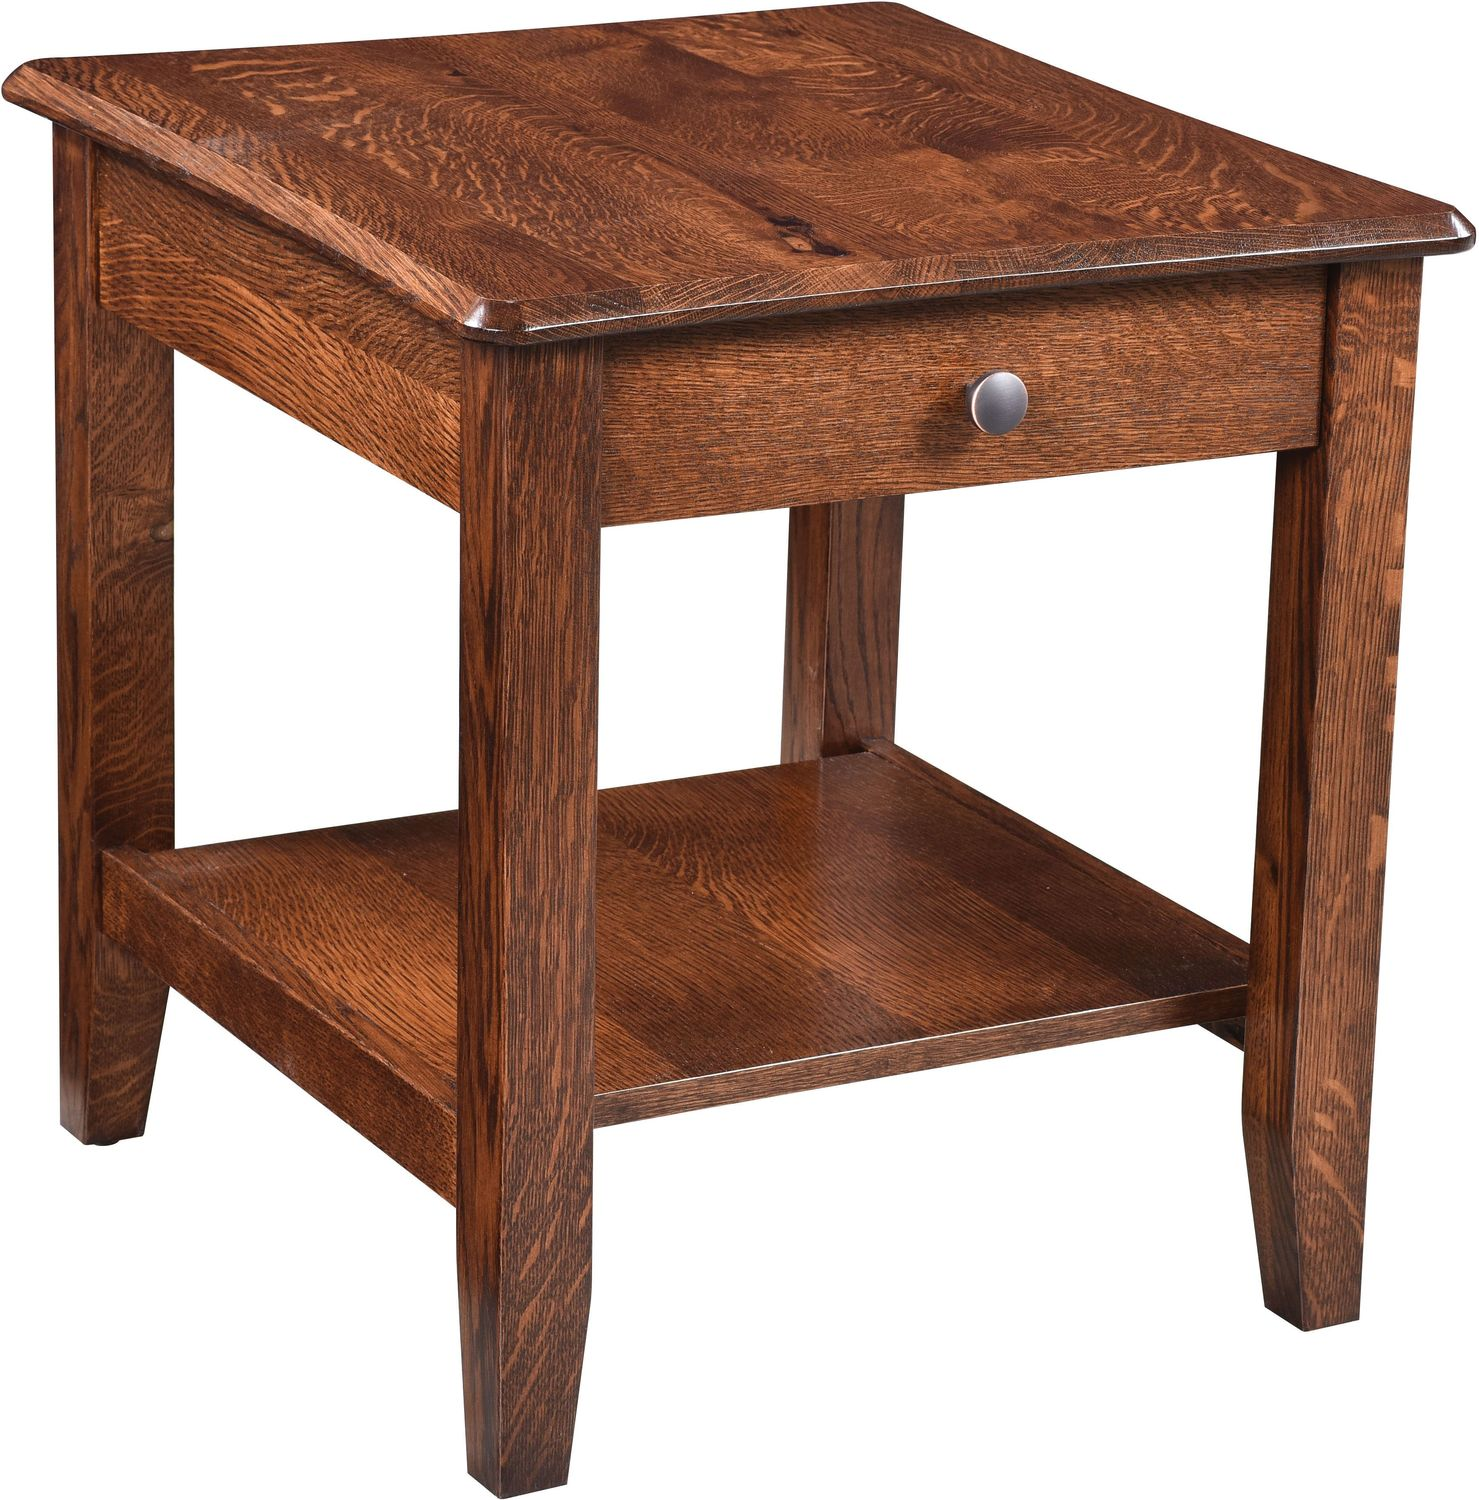 Bunker Hill End Table - Rustic Oak